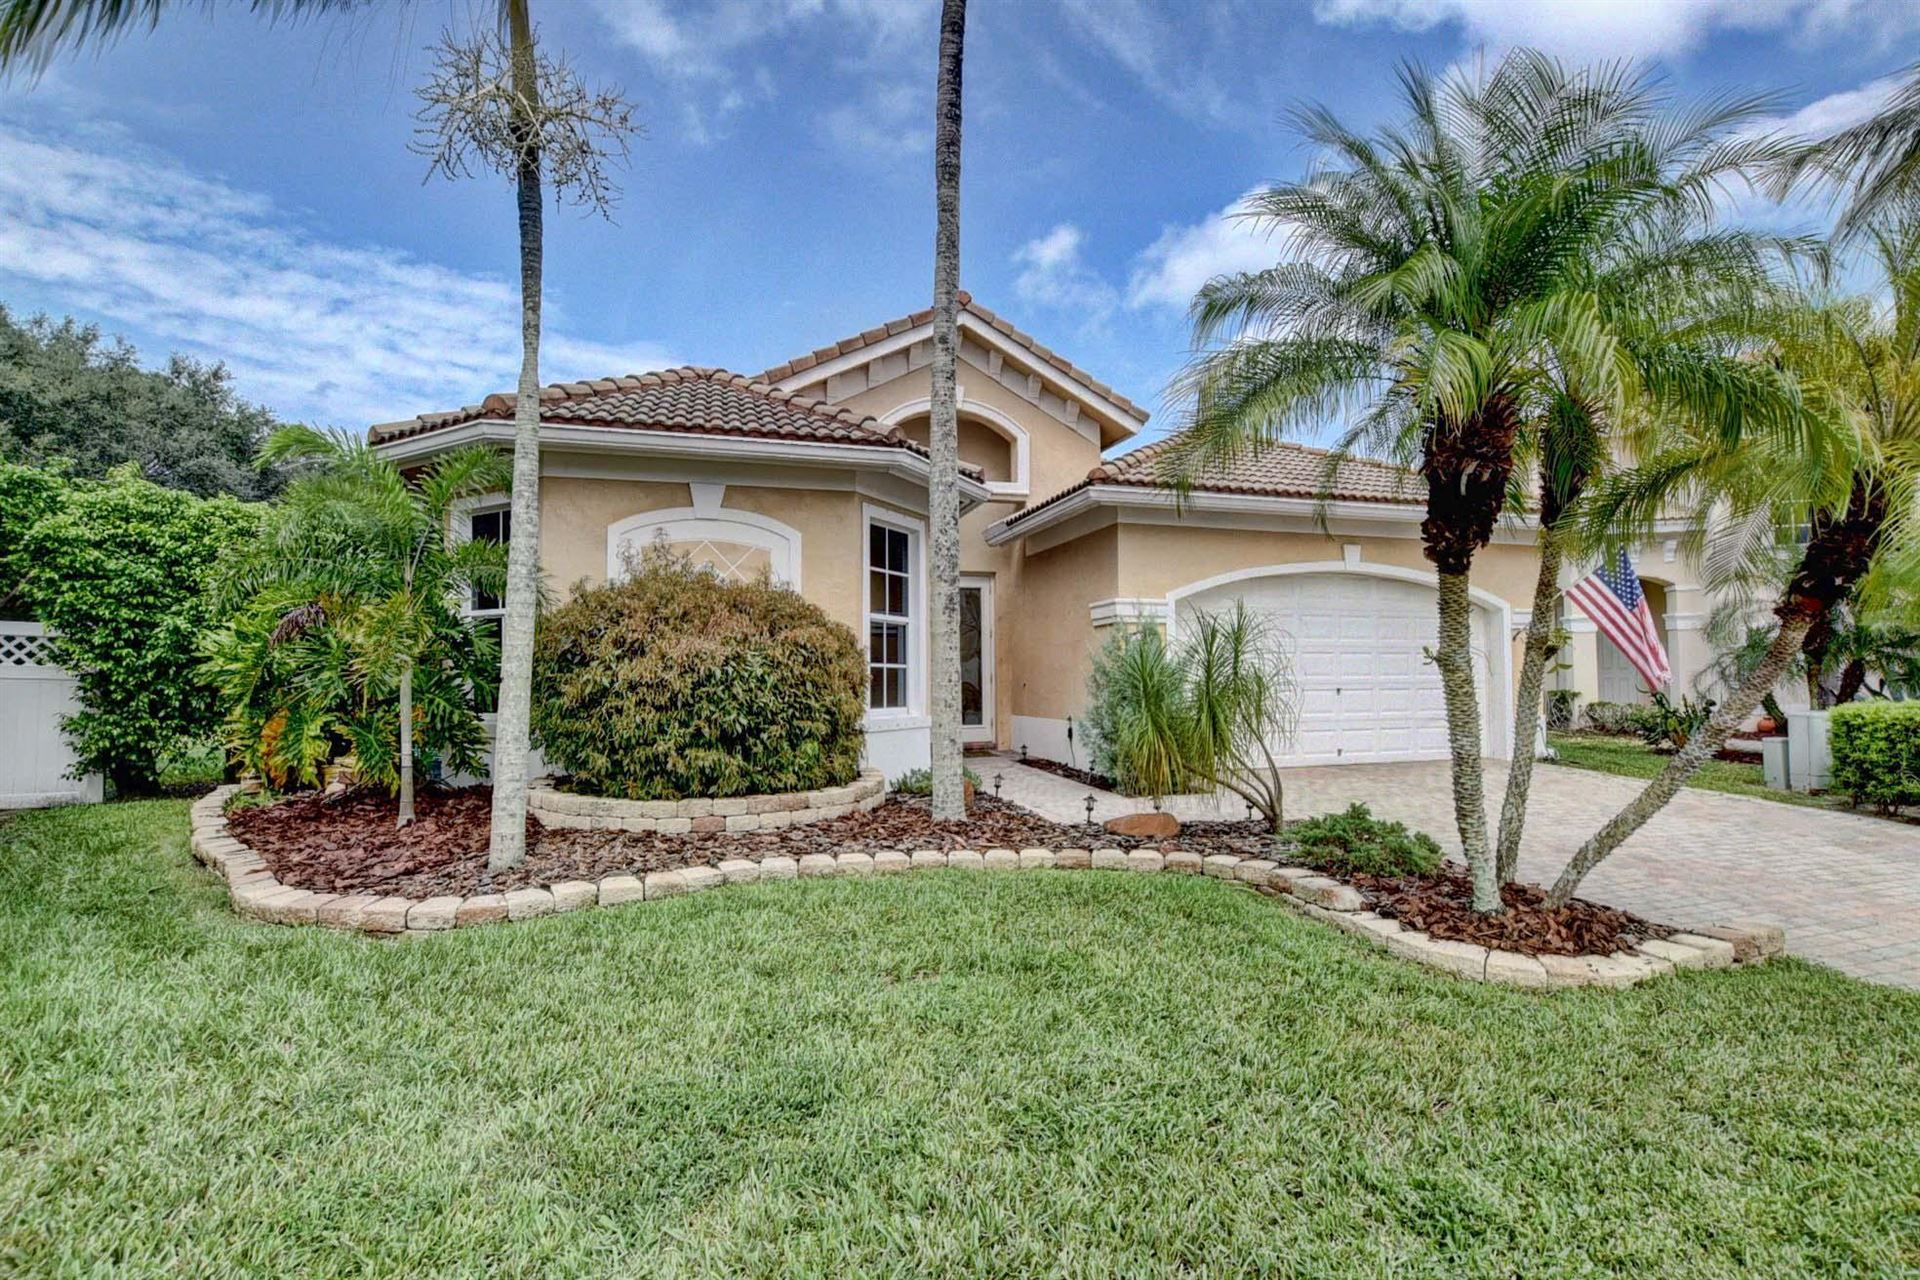 8617 White Cay, West Palm Beach, FL 33411 - MLS#: RX-10657942